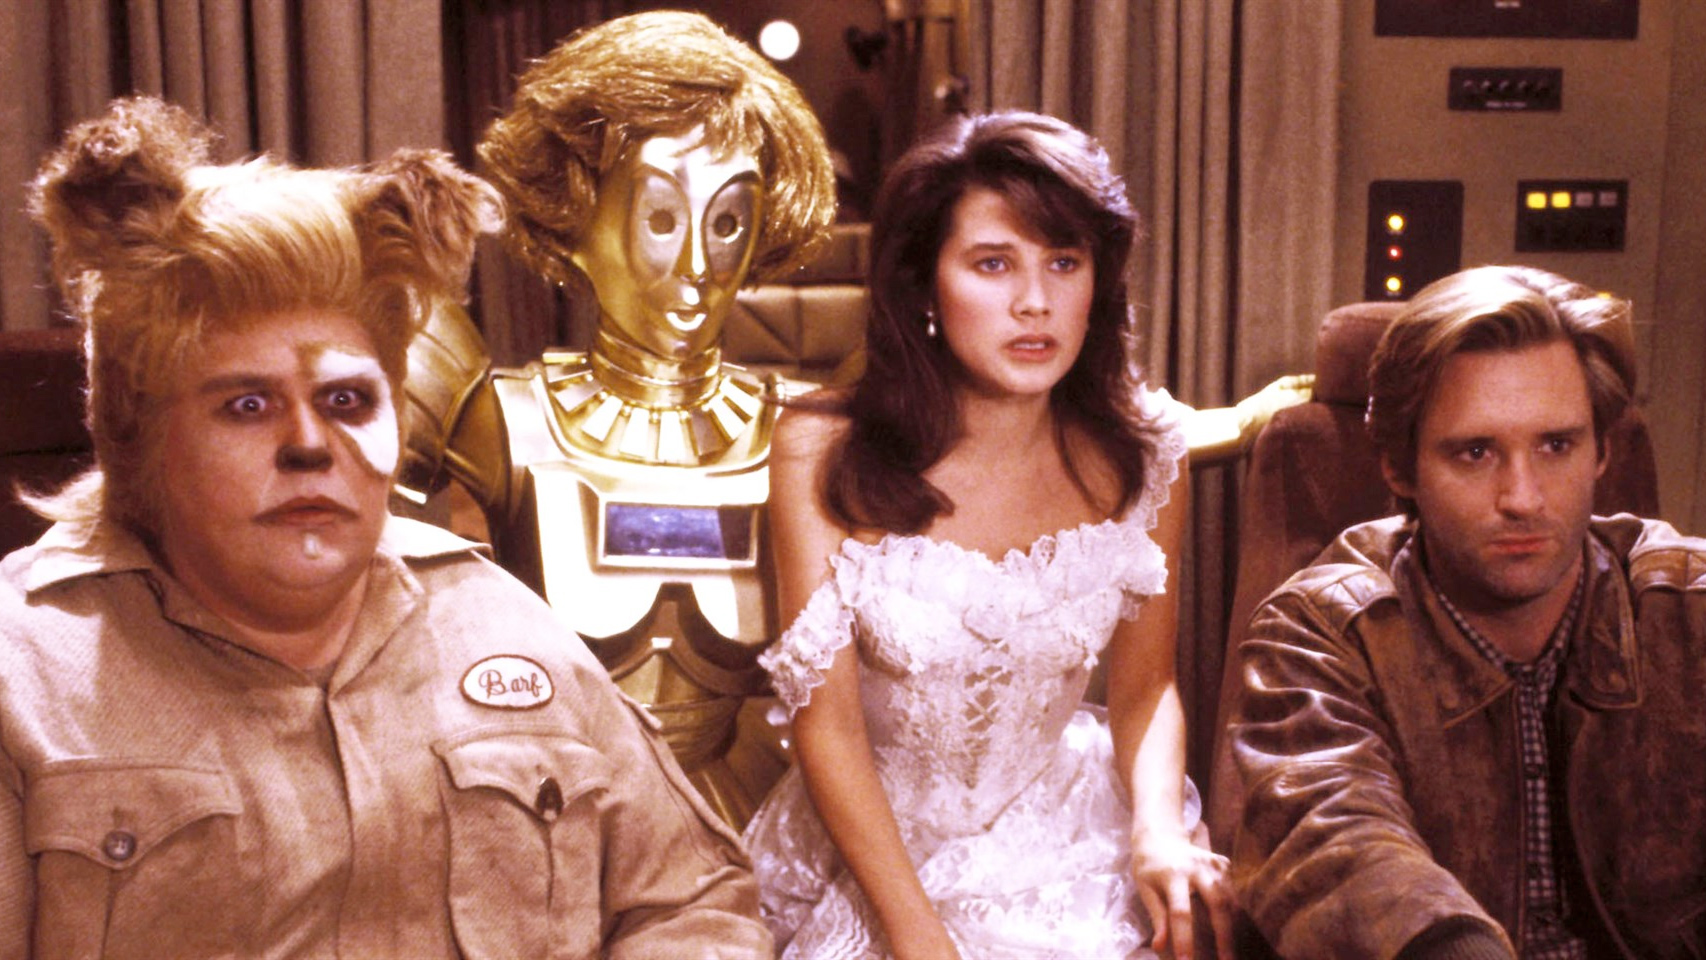 The cast of the movie Spaceballs in a still from the film.